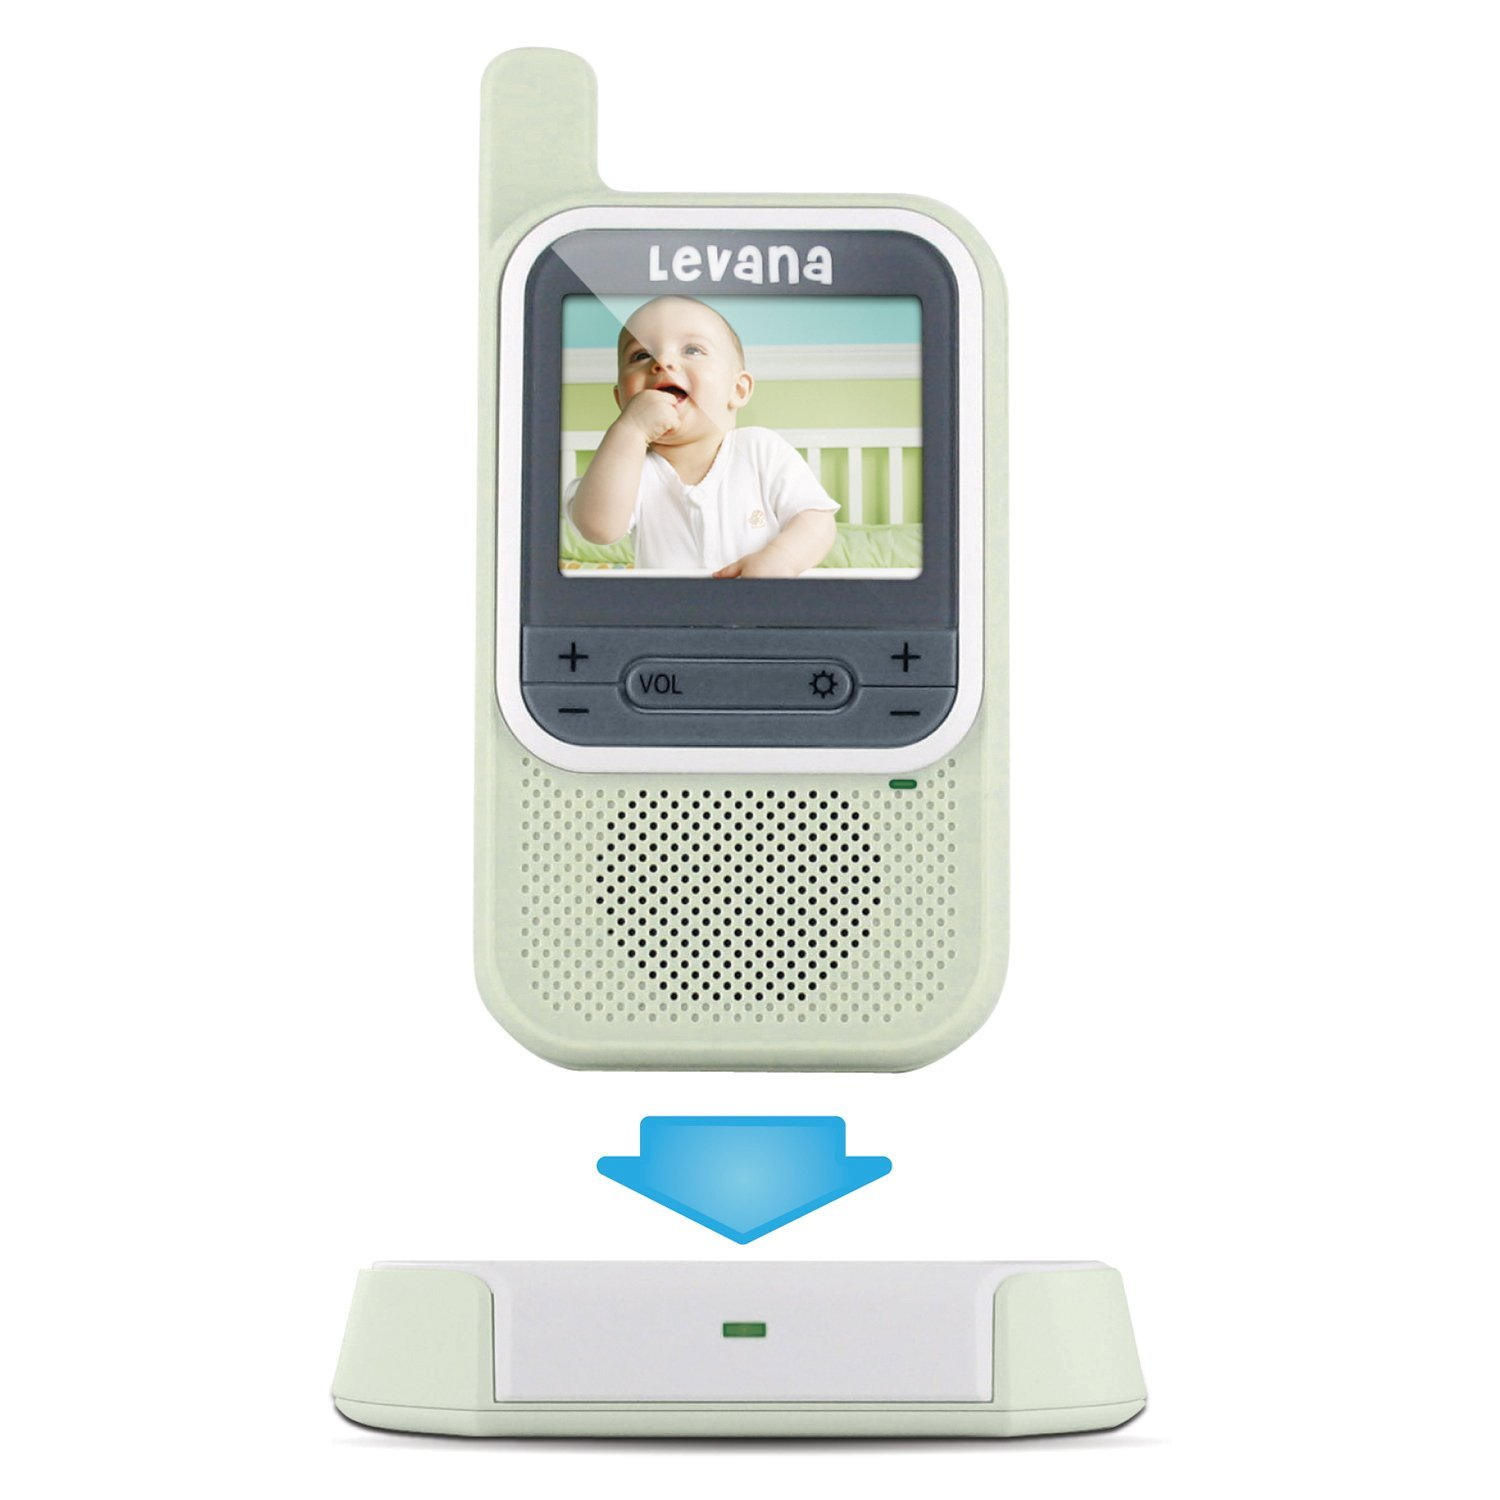 amazoncom levana clearvu digital video baby monitor with color 2015 persona. Black Bedroom Furniture Sets. Home Design Ideas